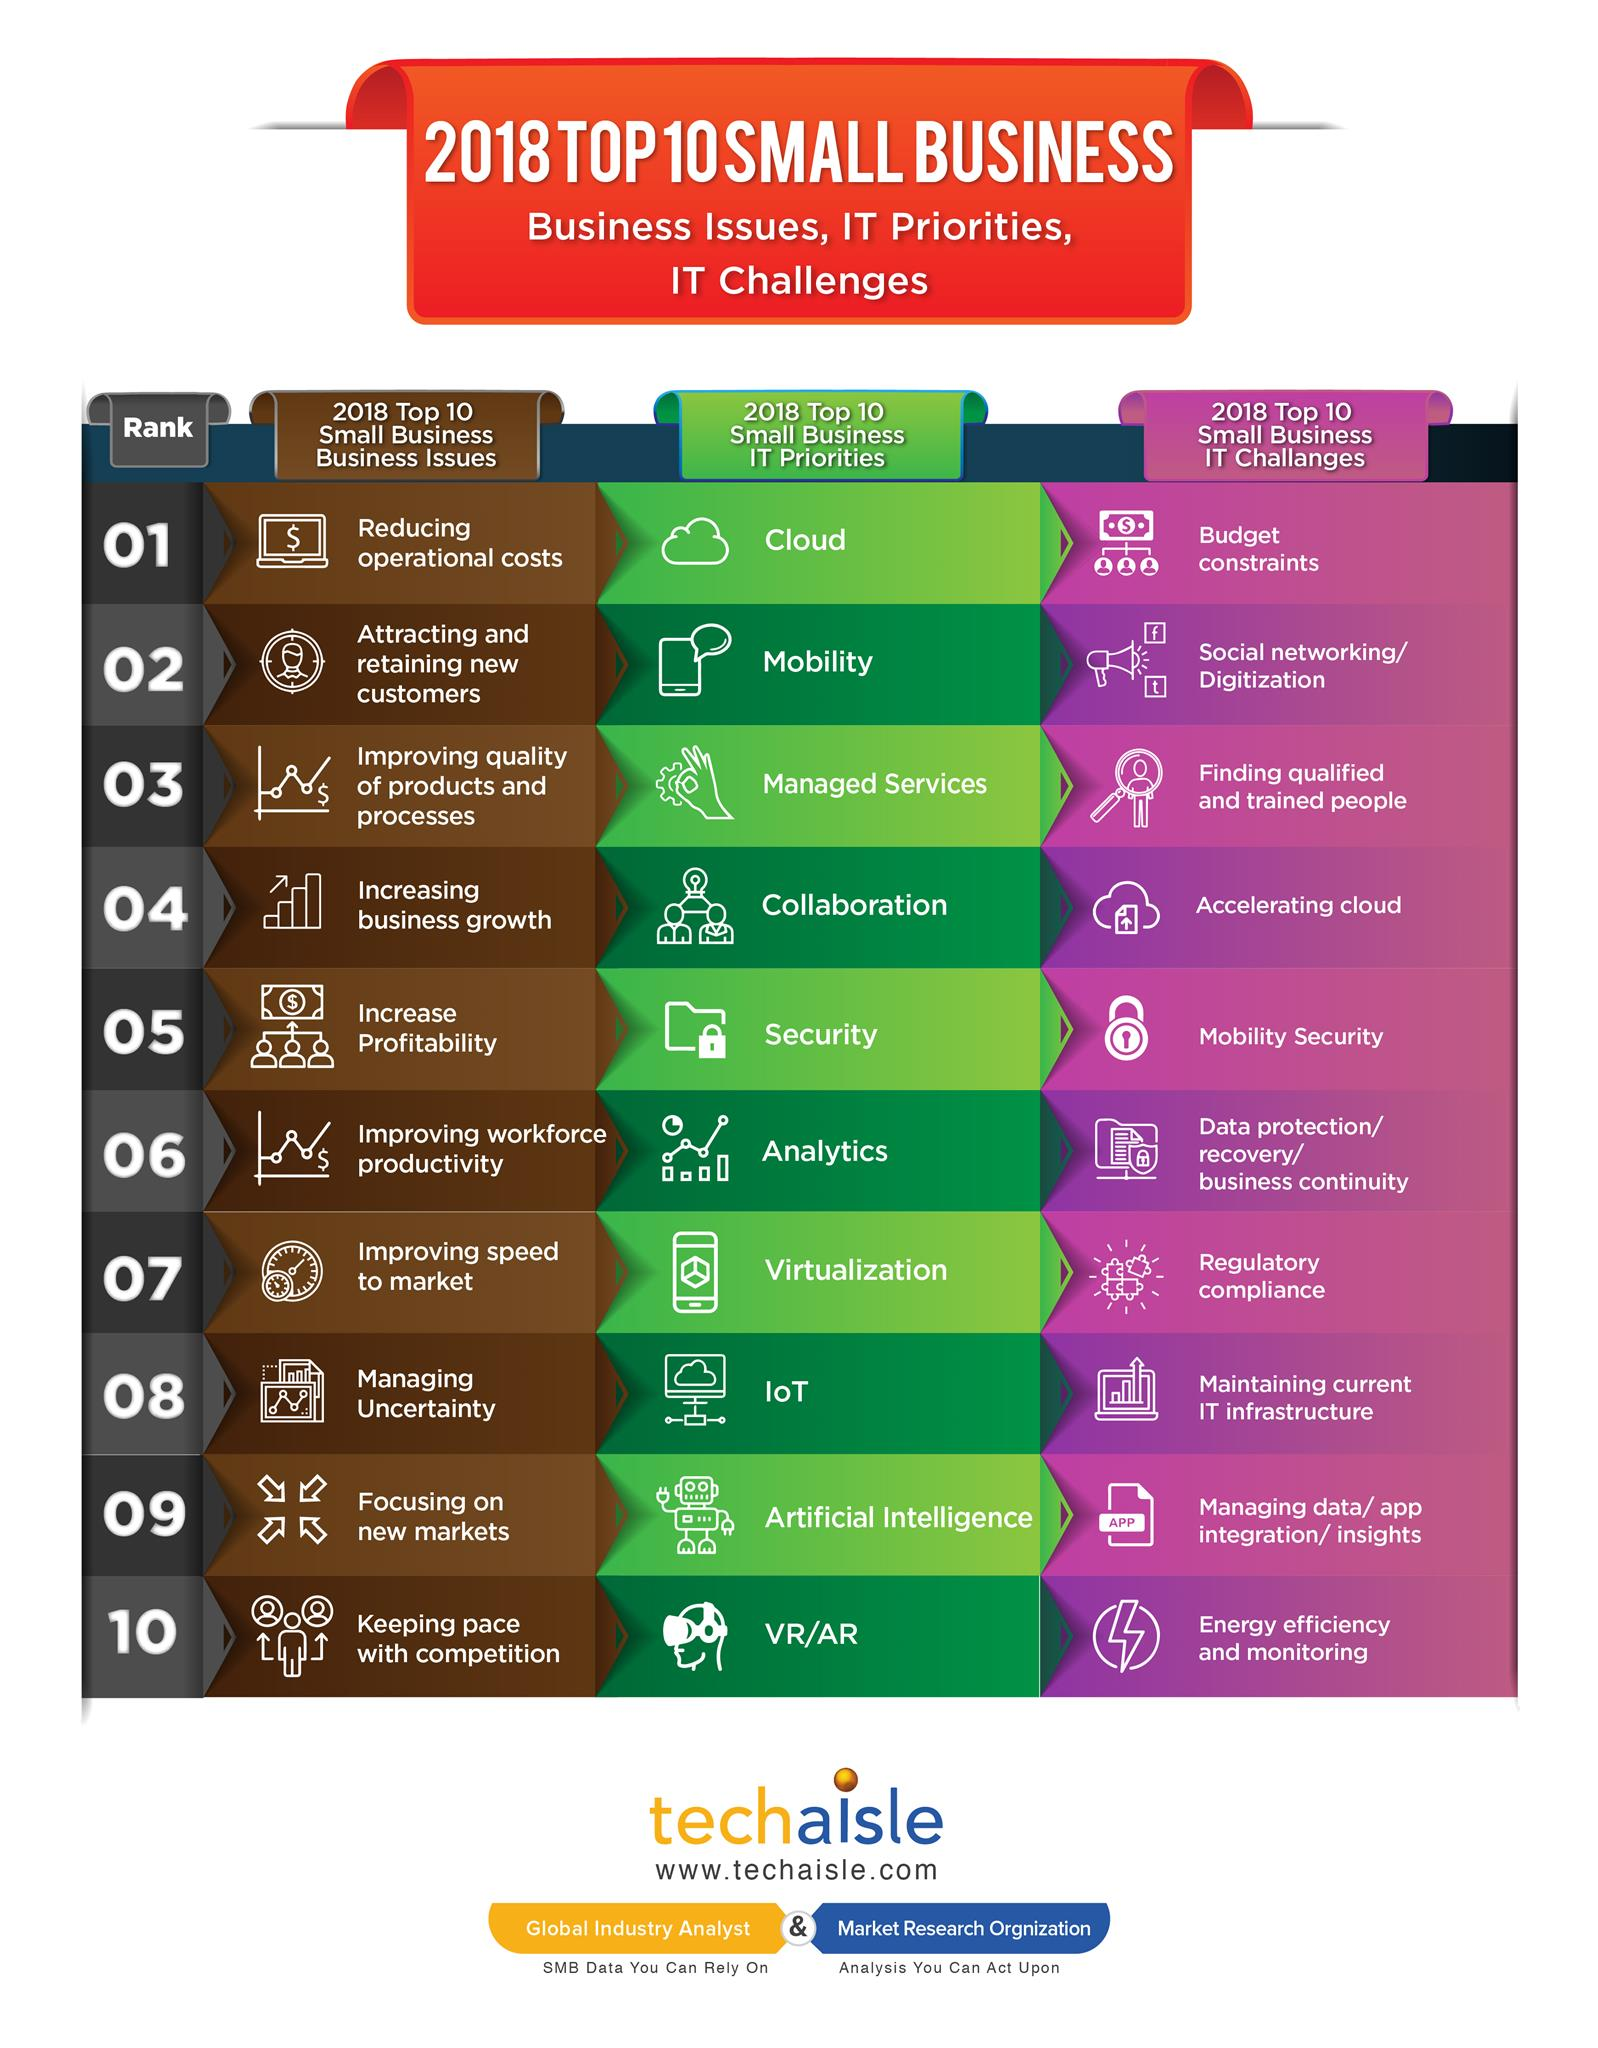 direct link httptechaislecomimagessmb infographics2018 top10 small business it priorities business issues techaisle infographicsjpg